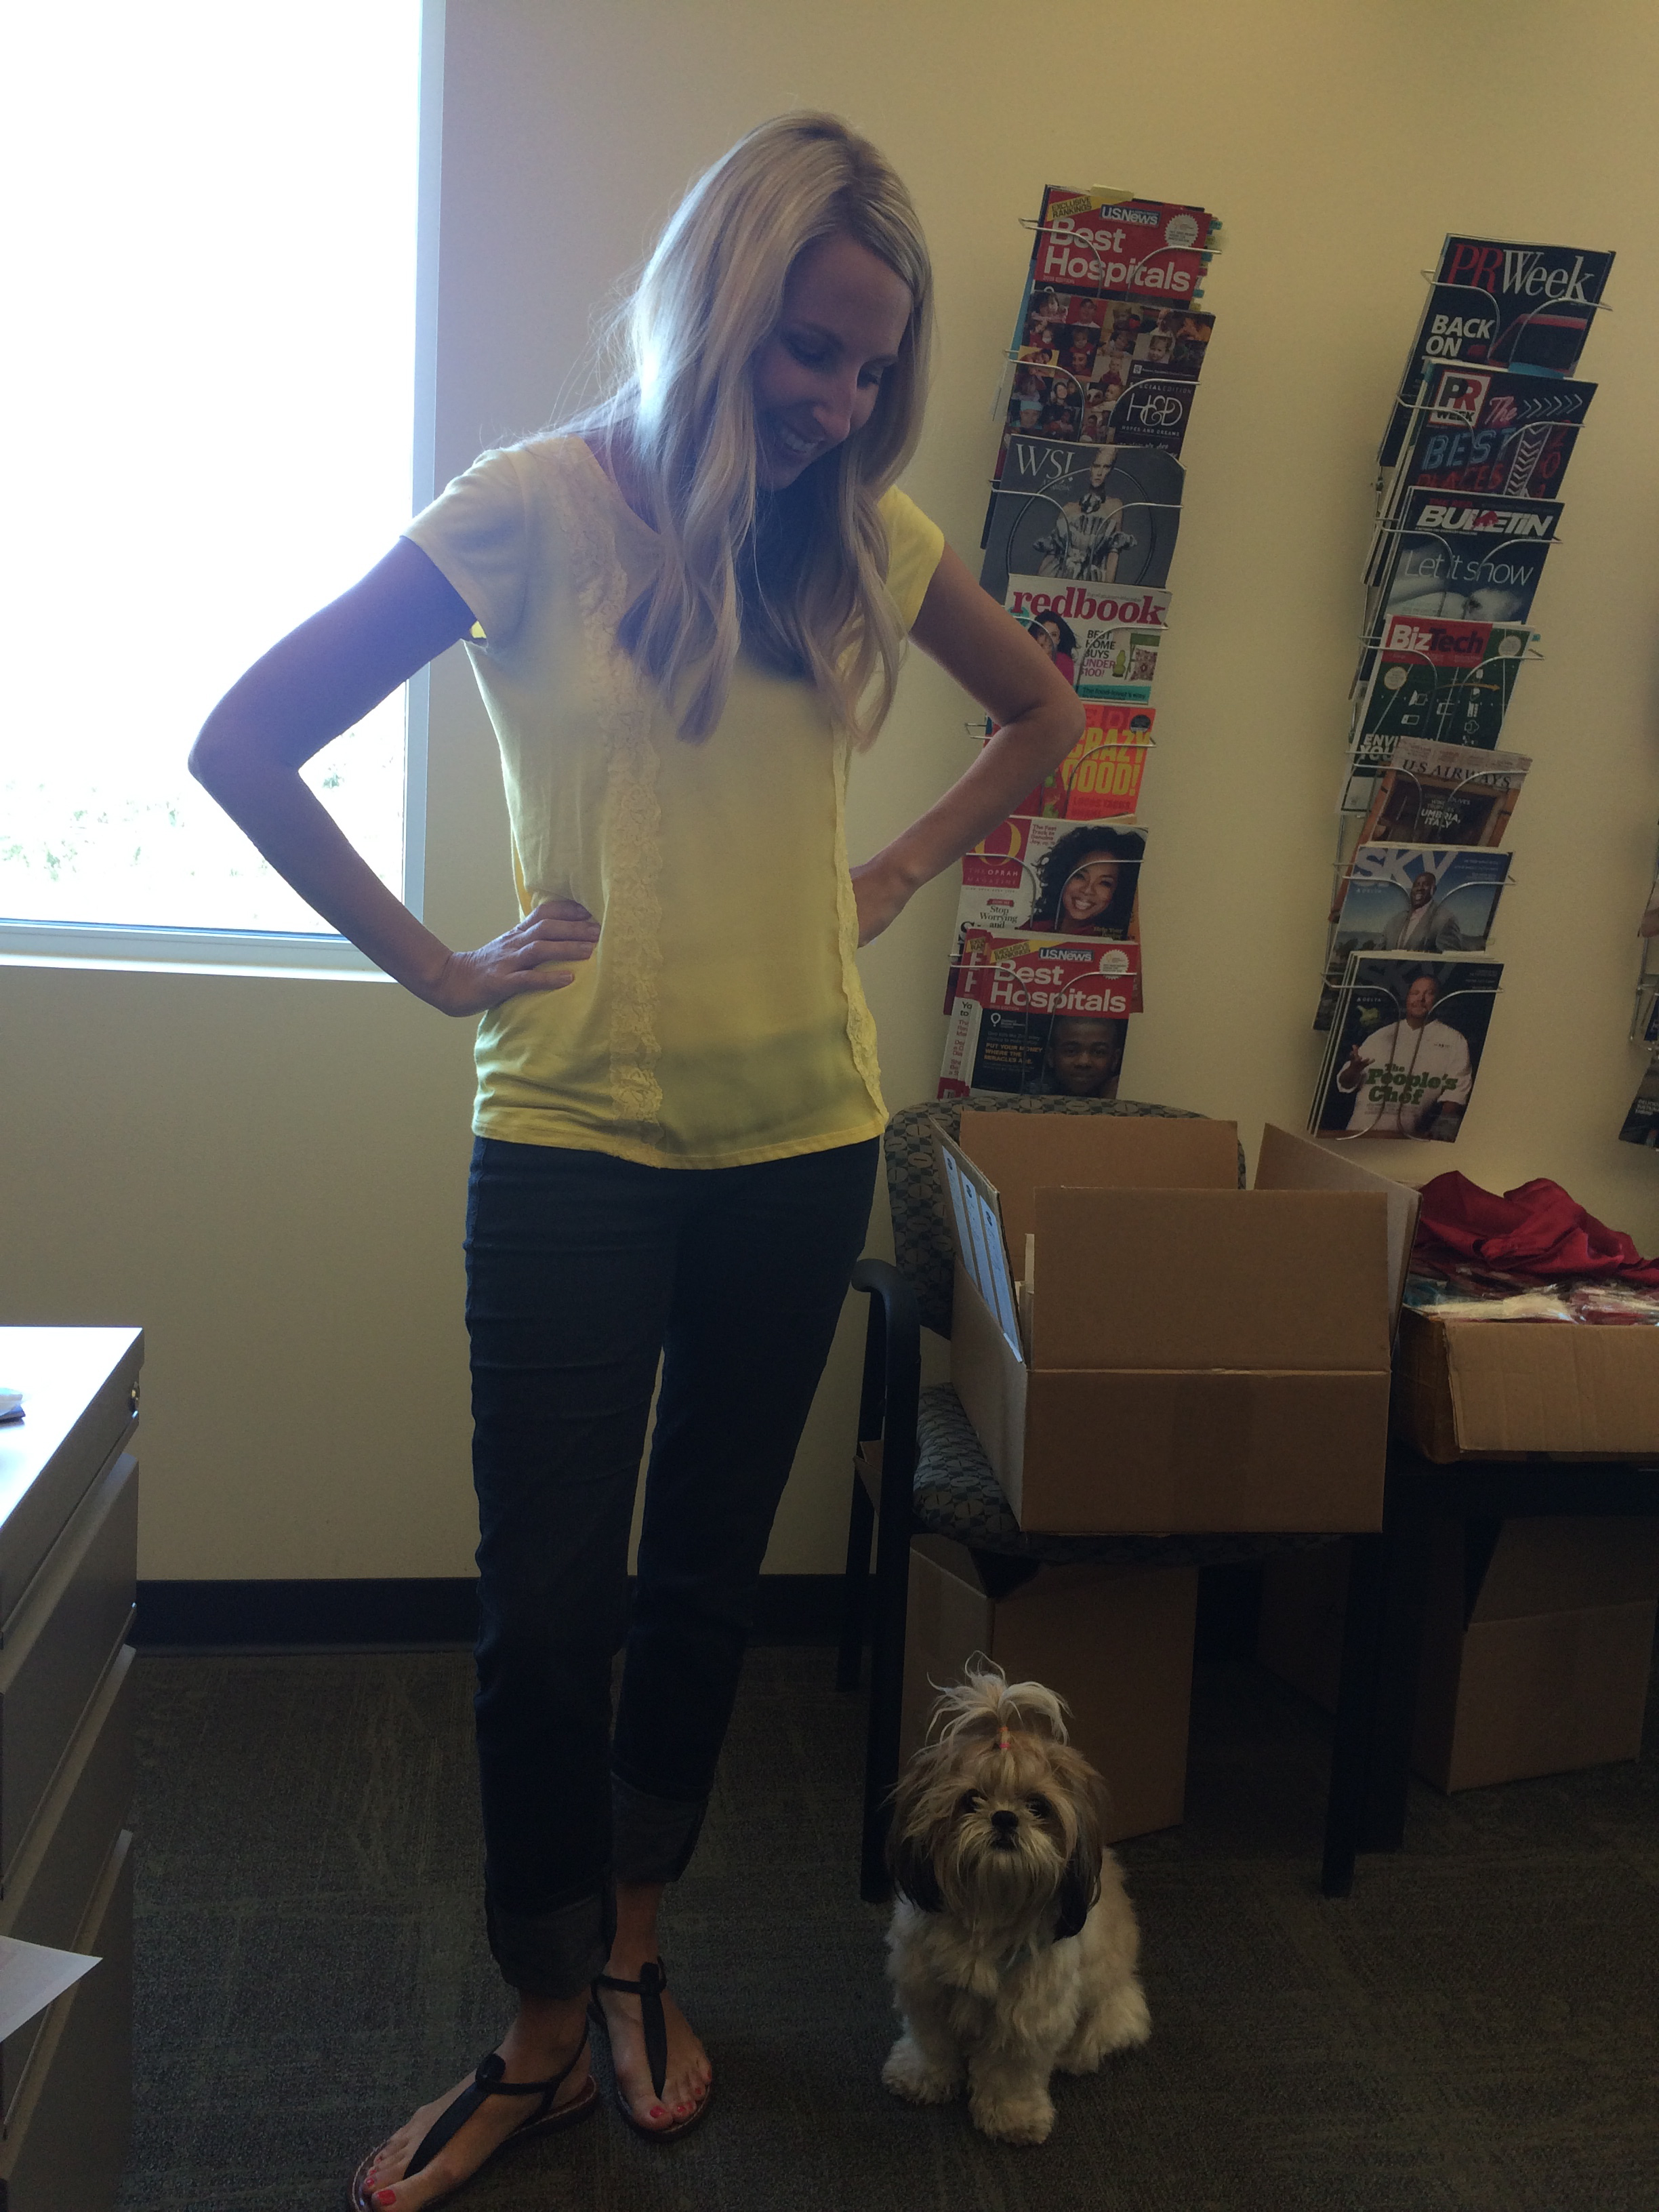 Bring your dog to work day! August 27, 2015442